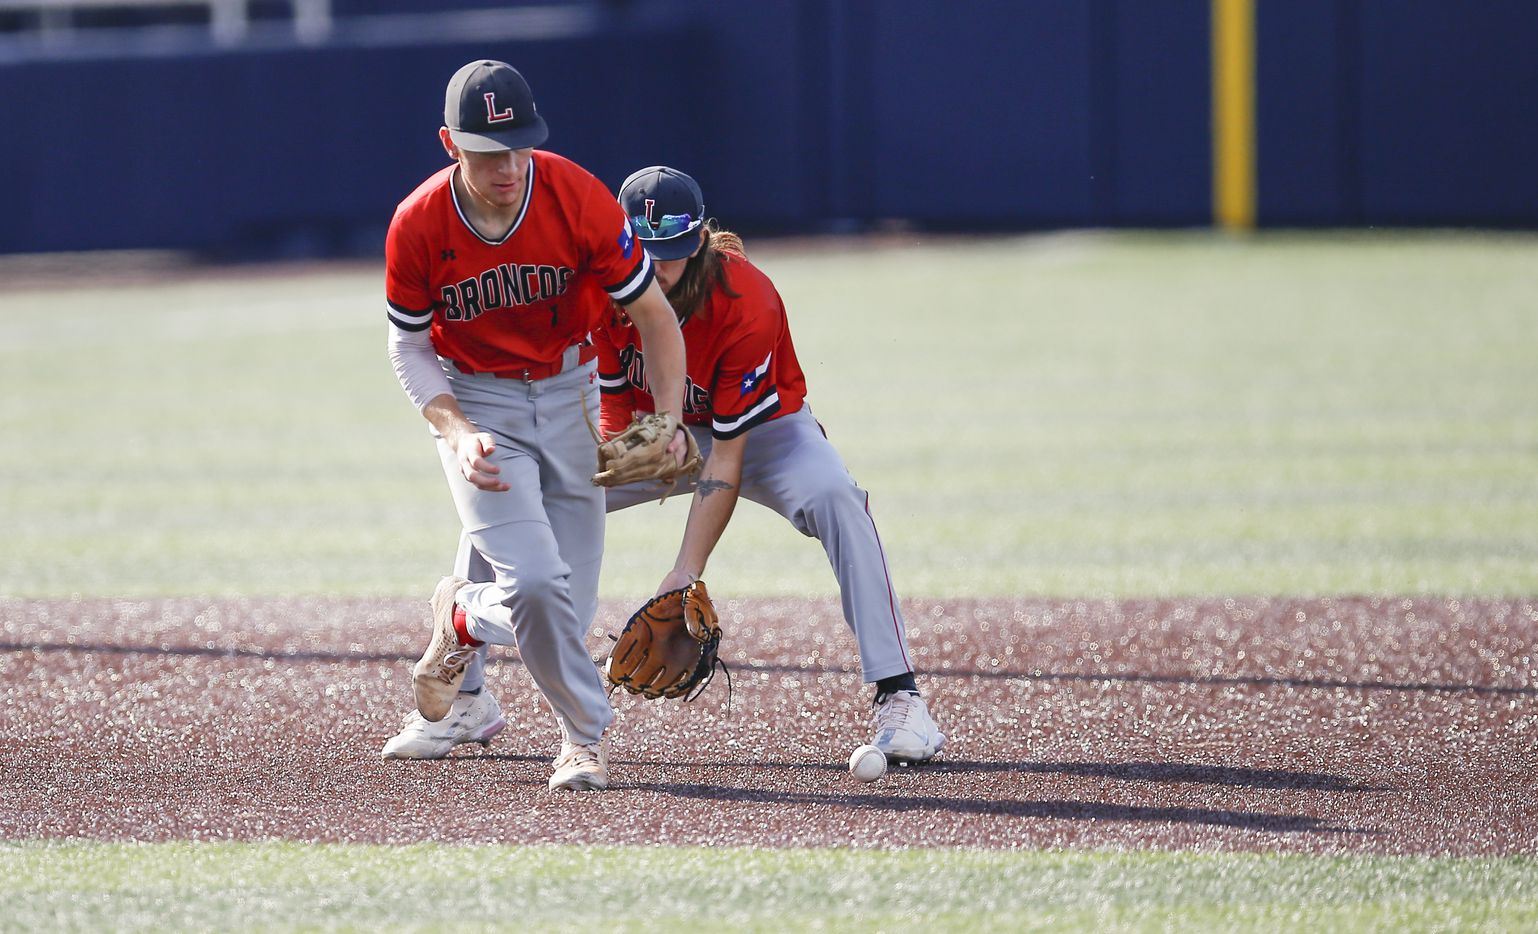 Mansfield Legacy's Parker Ibrahimi (1) and Raef Wright (9) misplay a RBI single hit by Birdville's Hogan Shelby (11) during the second inning of a high school Class 5A Region I quarterfinal series baseball game at Dallas Baptist University, Thursday, May 20, 2021. (Brandon Wade/Special Contributor)